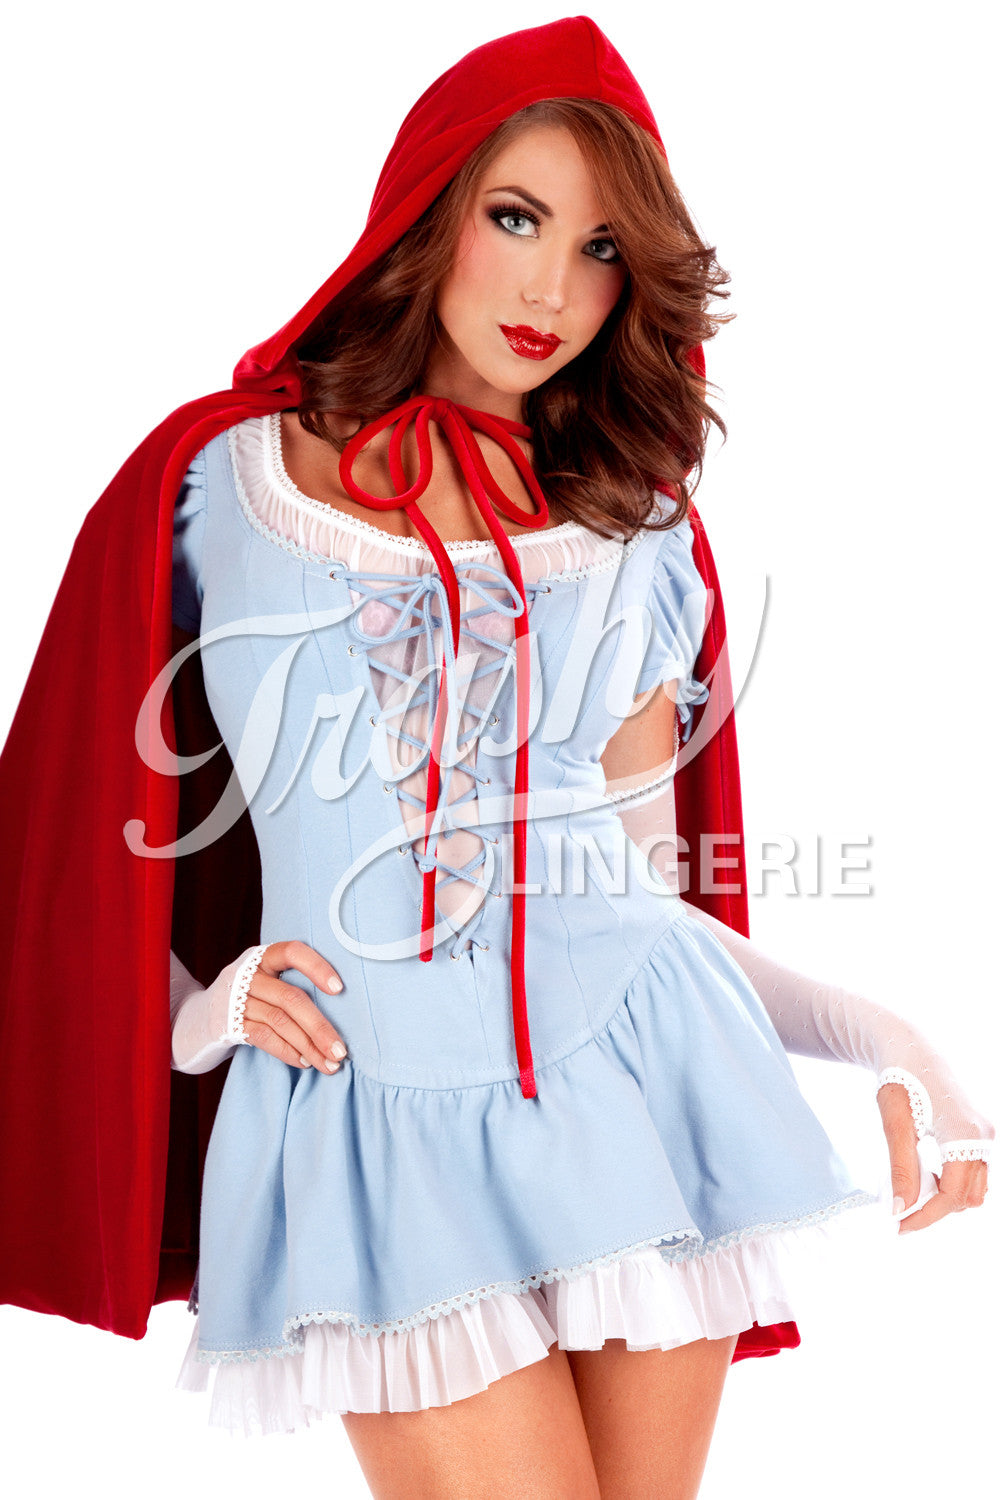 Hollywood Red Riding Hood Dress